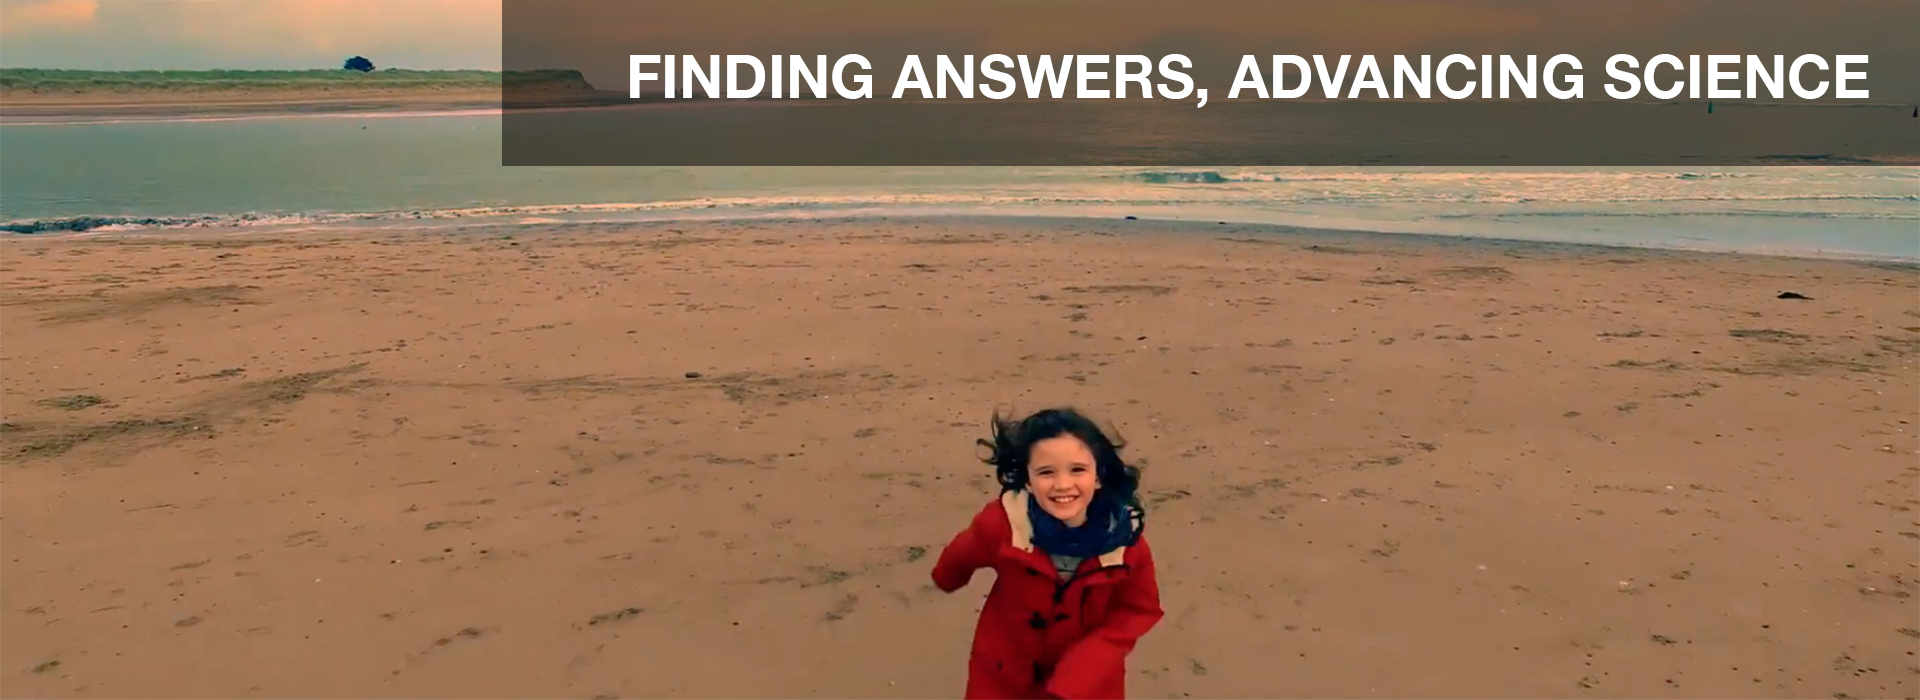 FINDING ANSWERS, ADVANCING SCIENCE